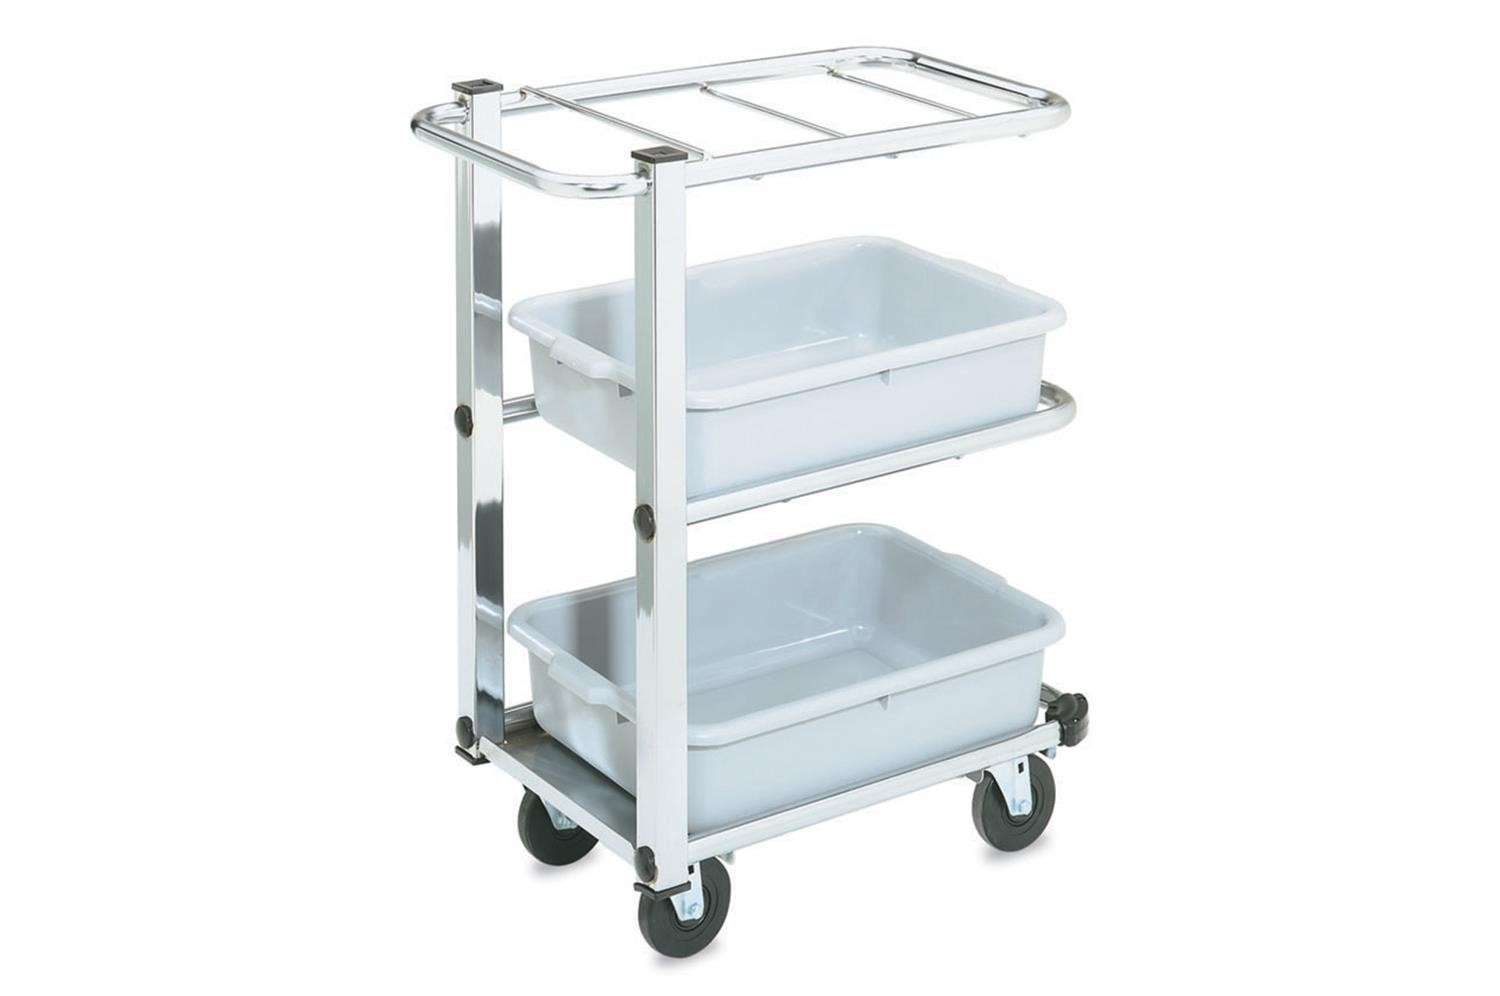 Vollrath 97186 Cantilever Bussing Cart 26-5/8 x 15-3/4 x 34-1/2